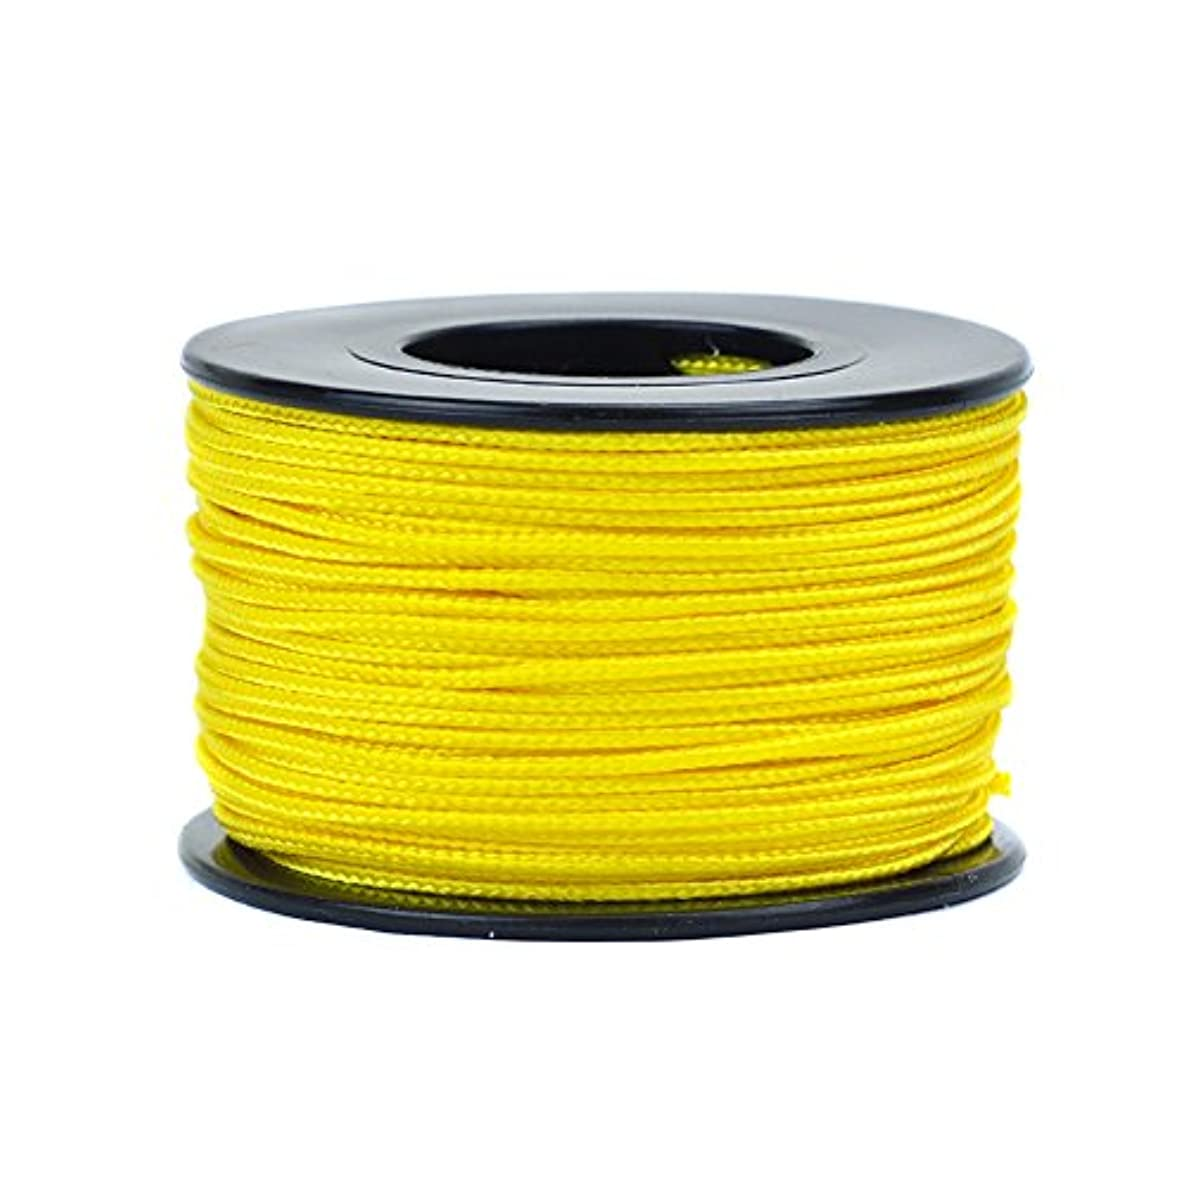 1.18mm Braided Micro Cord 125 FT (APPROX.) Spools Various Colors